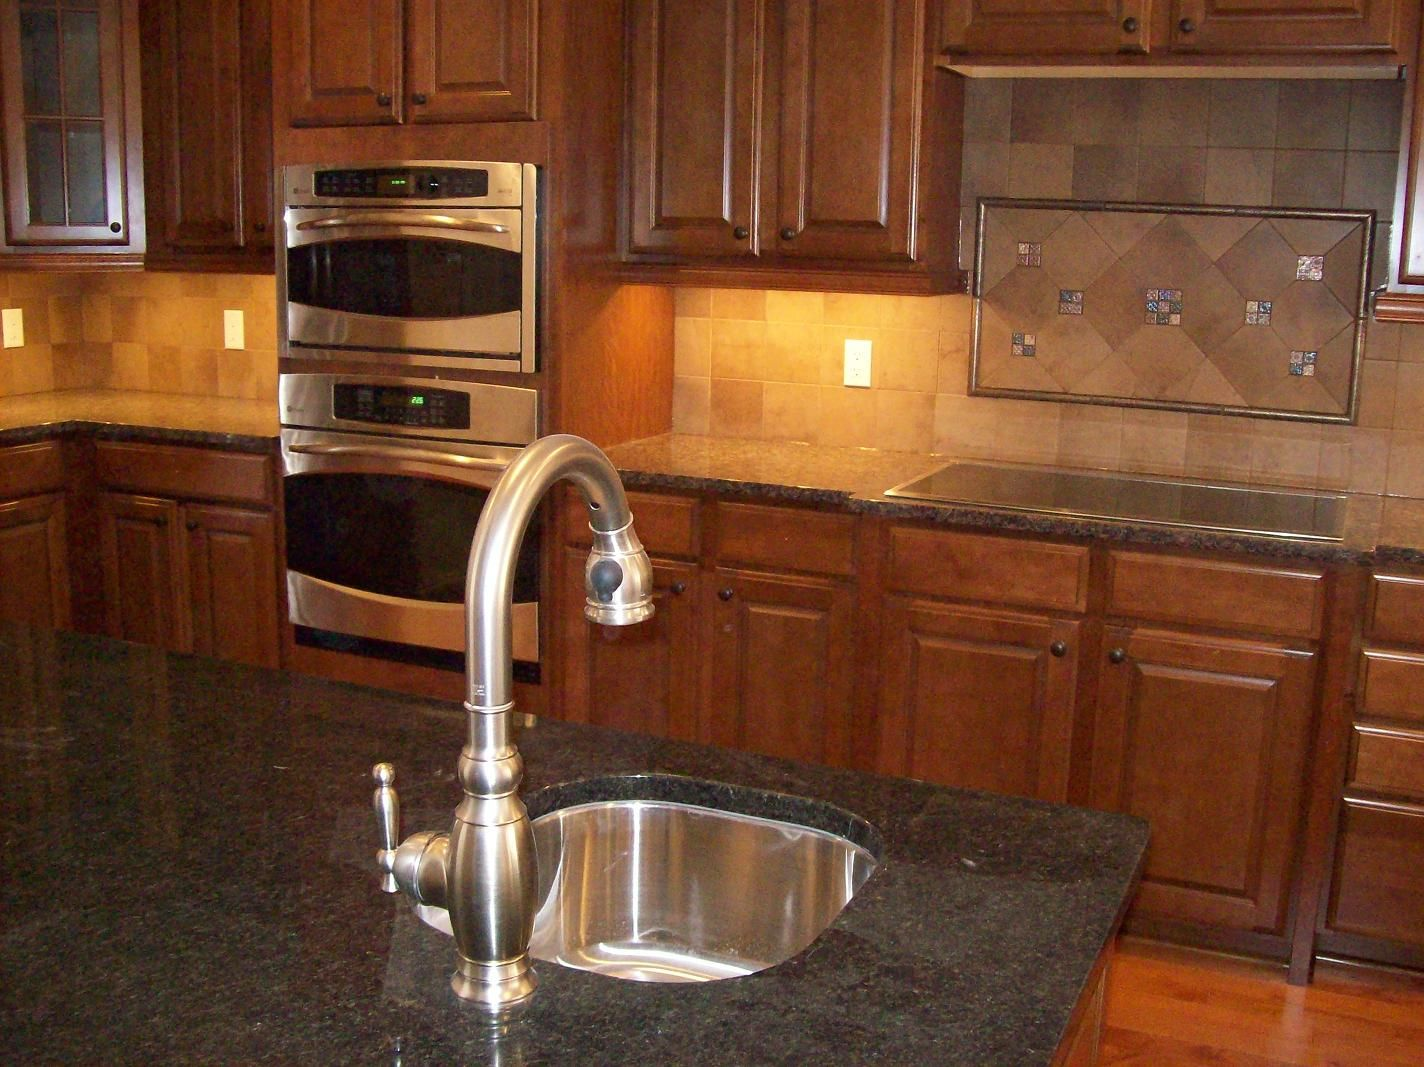 10 simple backsplash ideas for your kitchen backsplash Kitchen backsplash ideas